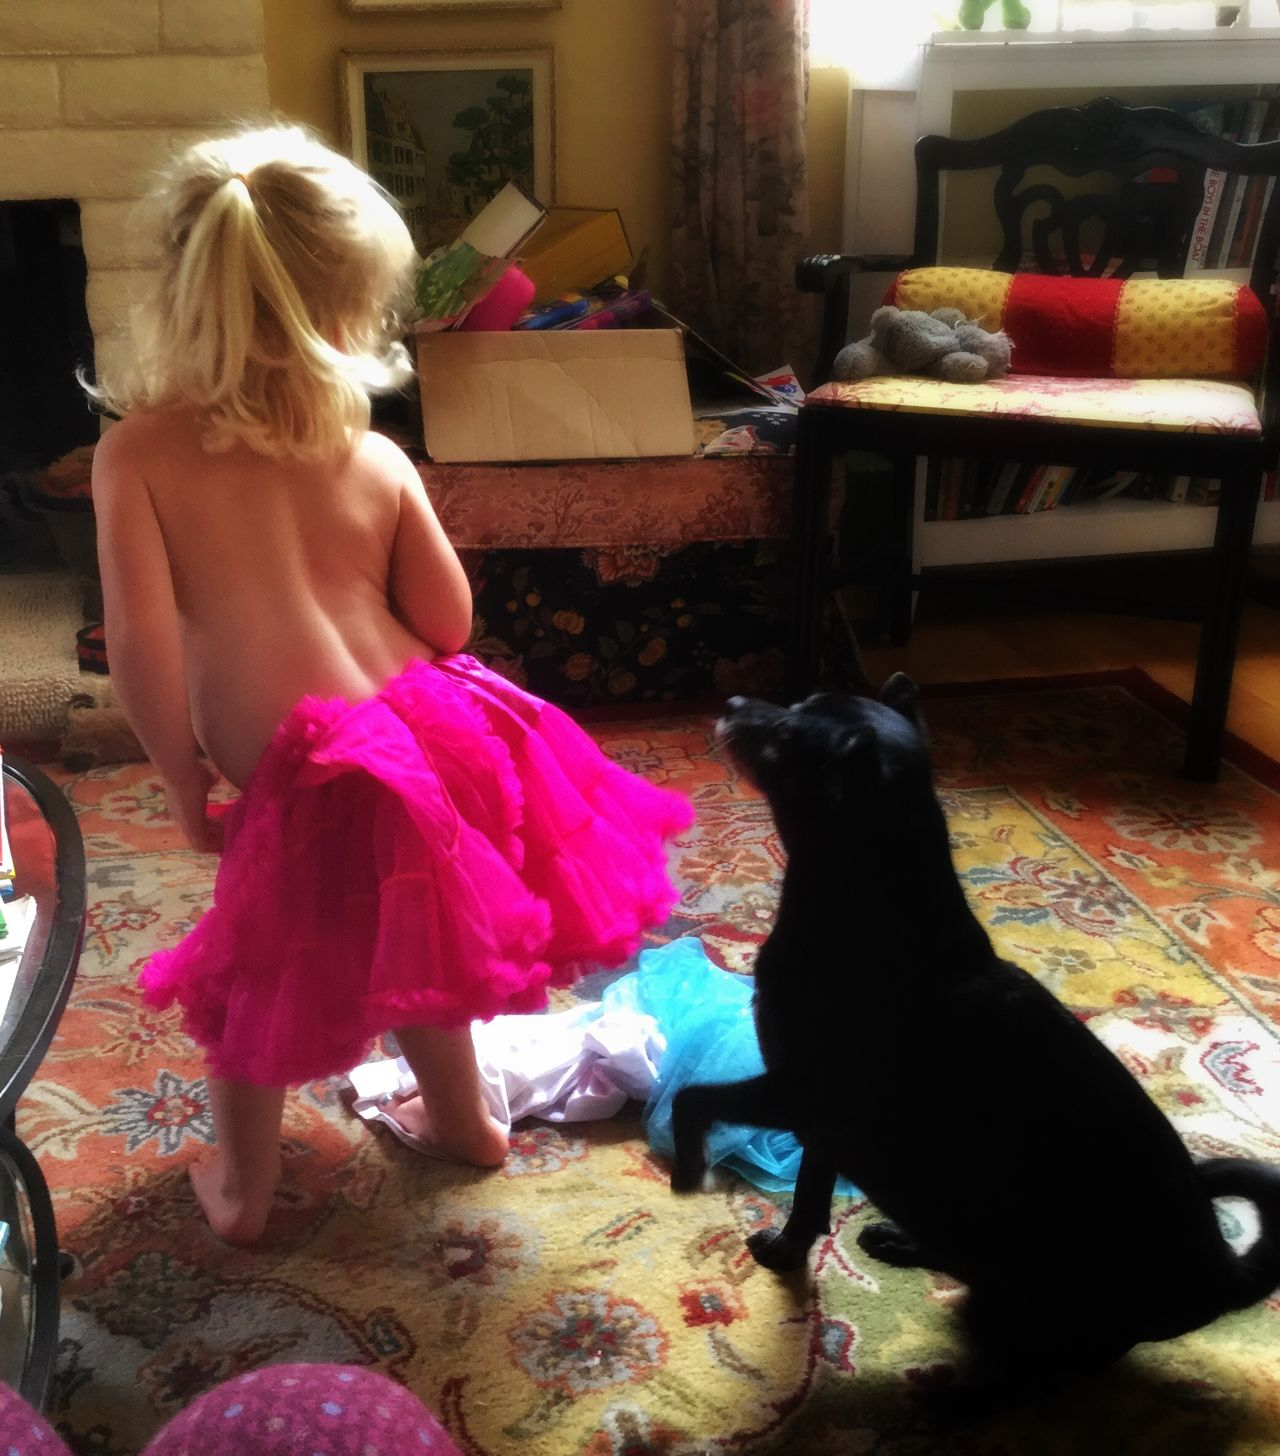 Little Blonde Girl Tutu Dog Dog Yoga Little Girl Dancing Colorful Playful Dancing Dancing Girl Indoors  Pink Tutu Black Dog Blonde Hair Booty Shake Dog Santa Rosa CA